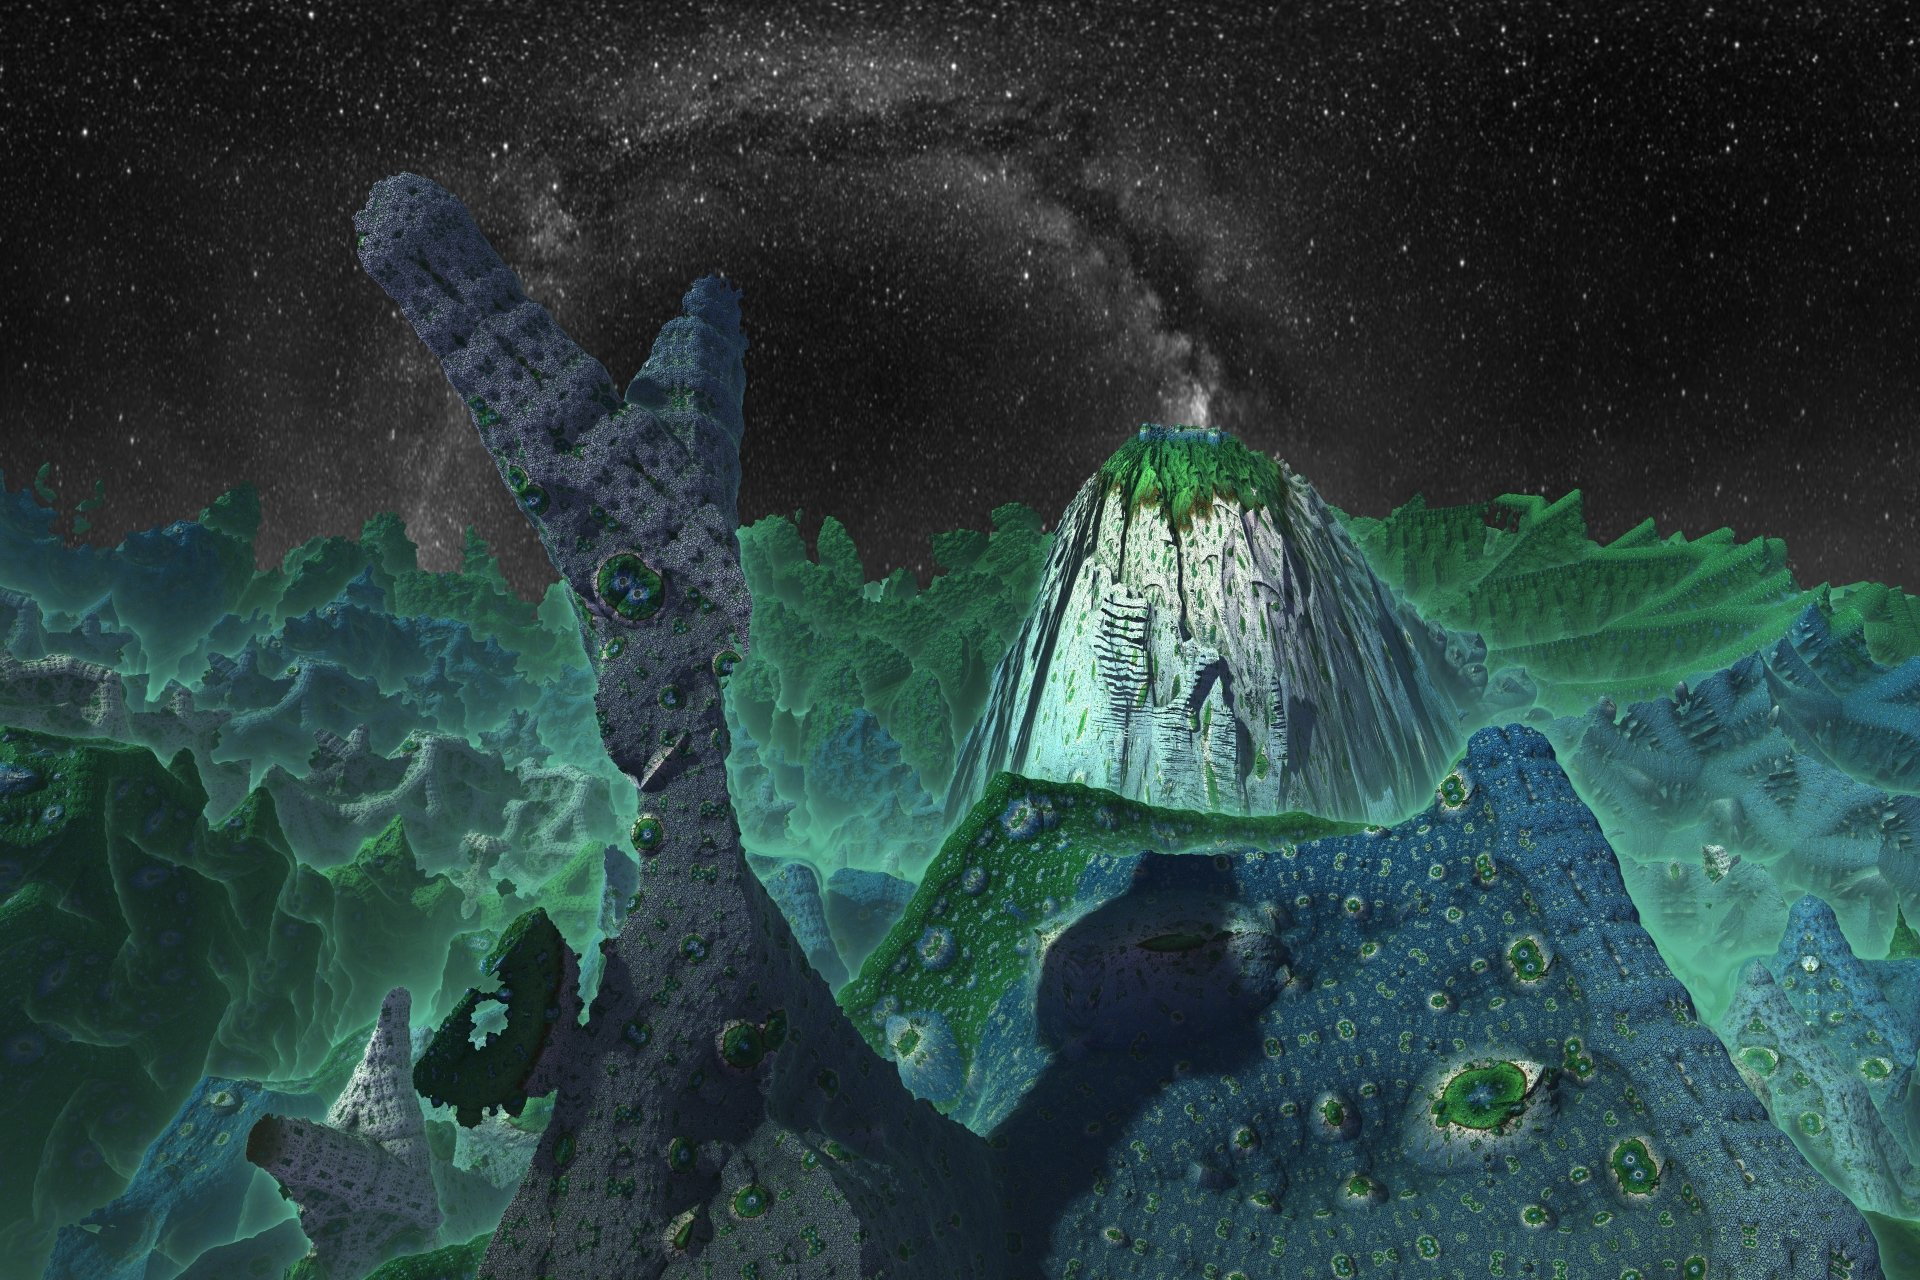 Abstract - Fractal  3D Abstract Artistic Digital Art Mandelbulb 3D Green Space Night Landscape Mountain CGI Wallpaper